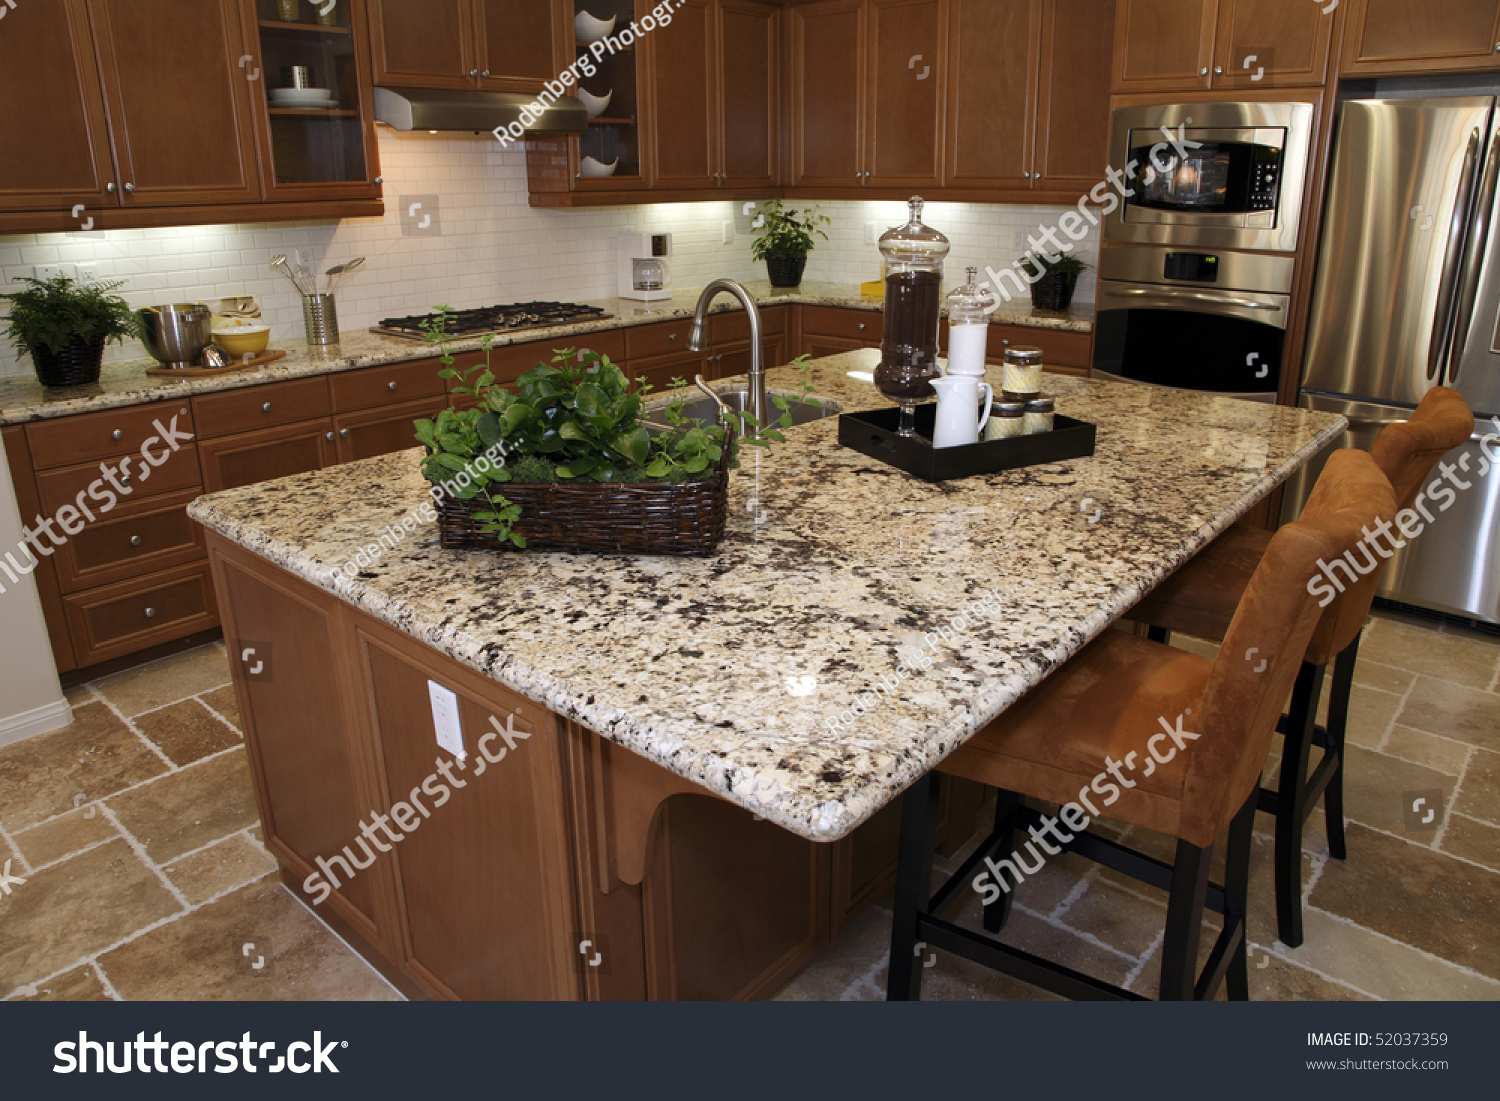 Granite Island Kitchen Kitchen With Stainless Steel Appliances And A Granite Island